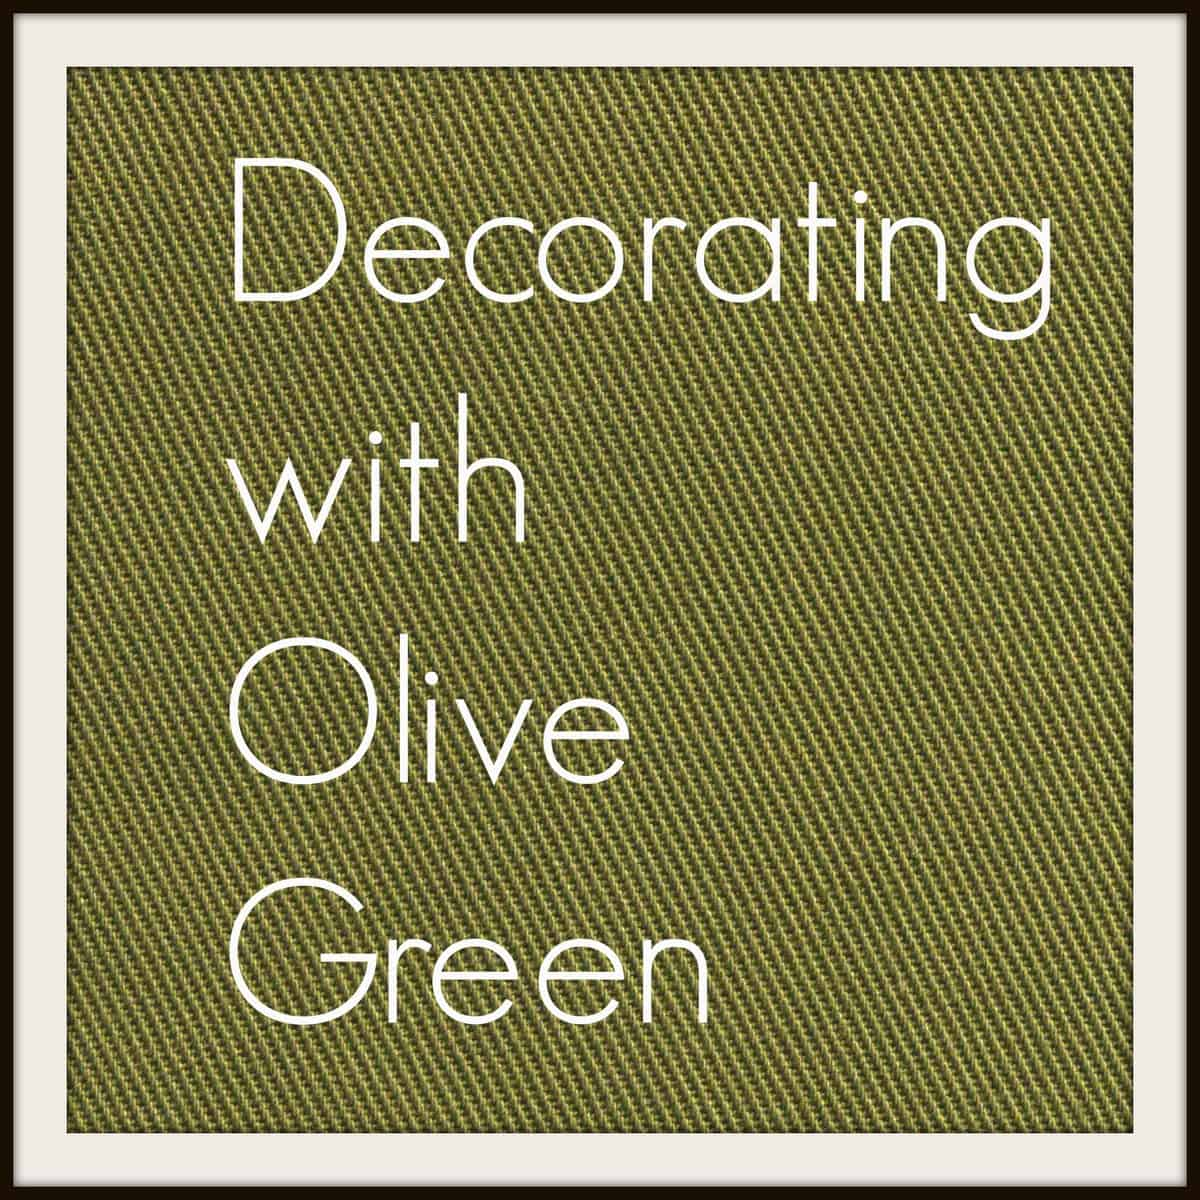 Decorating With Olive Green Heartwork Organizing Tips For Your Home Decluttering